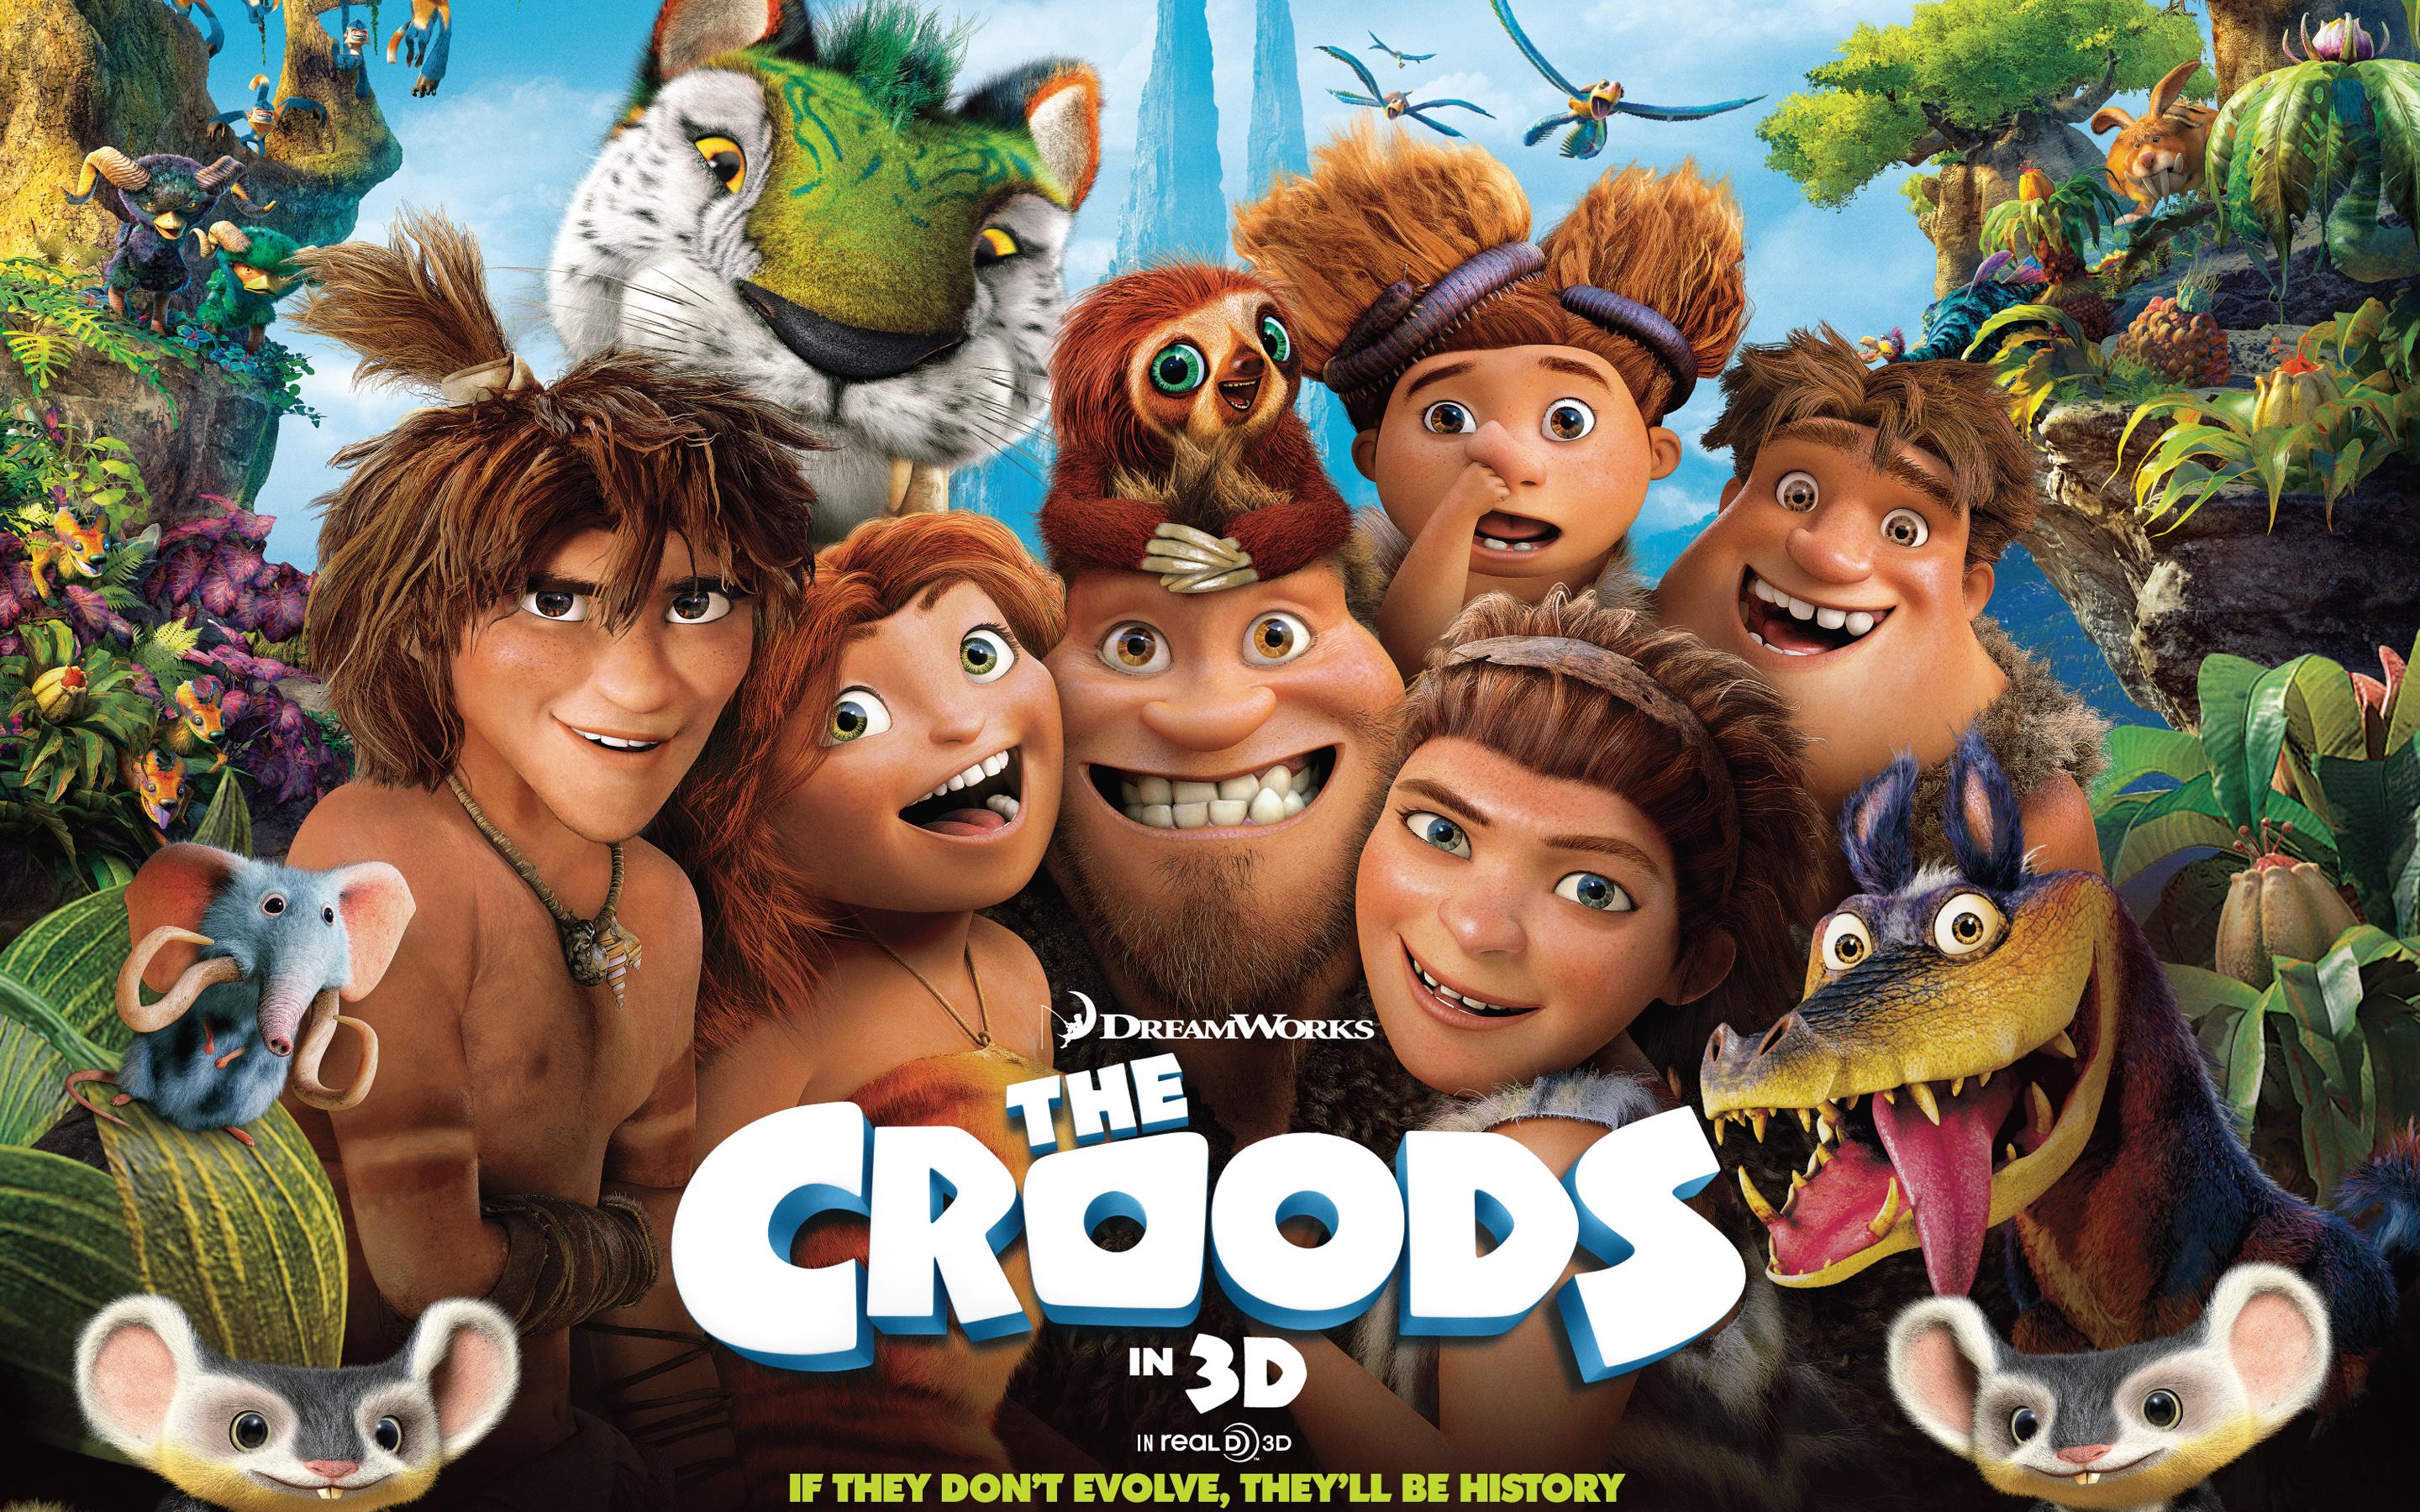 The Croods Movie Wallpapers HD Wallpapers 2880x1800